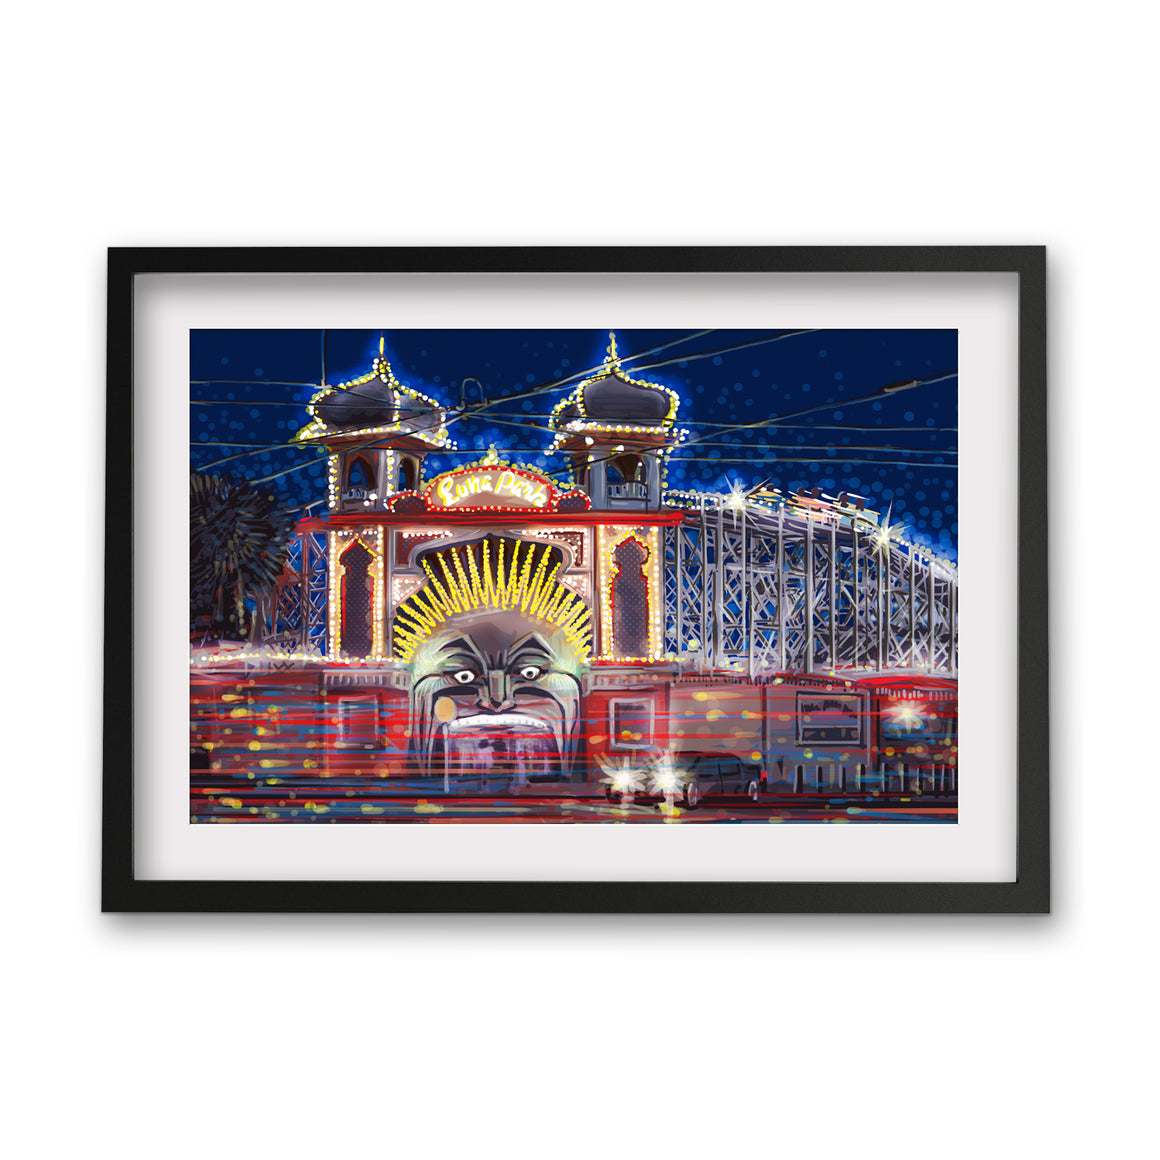 Print (Iconic) - Melbourne Luna Park by Night